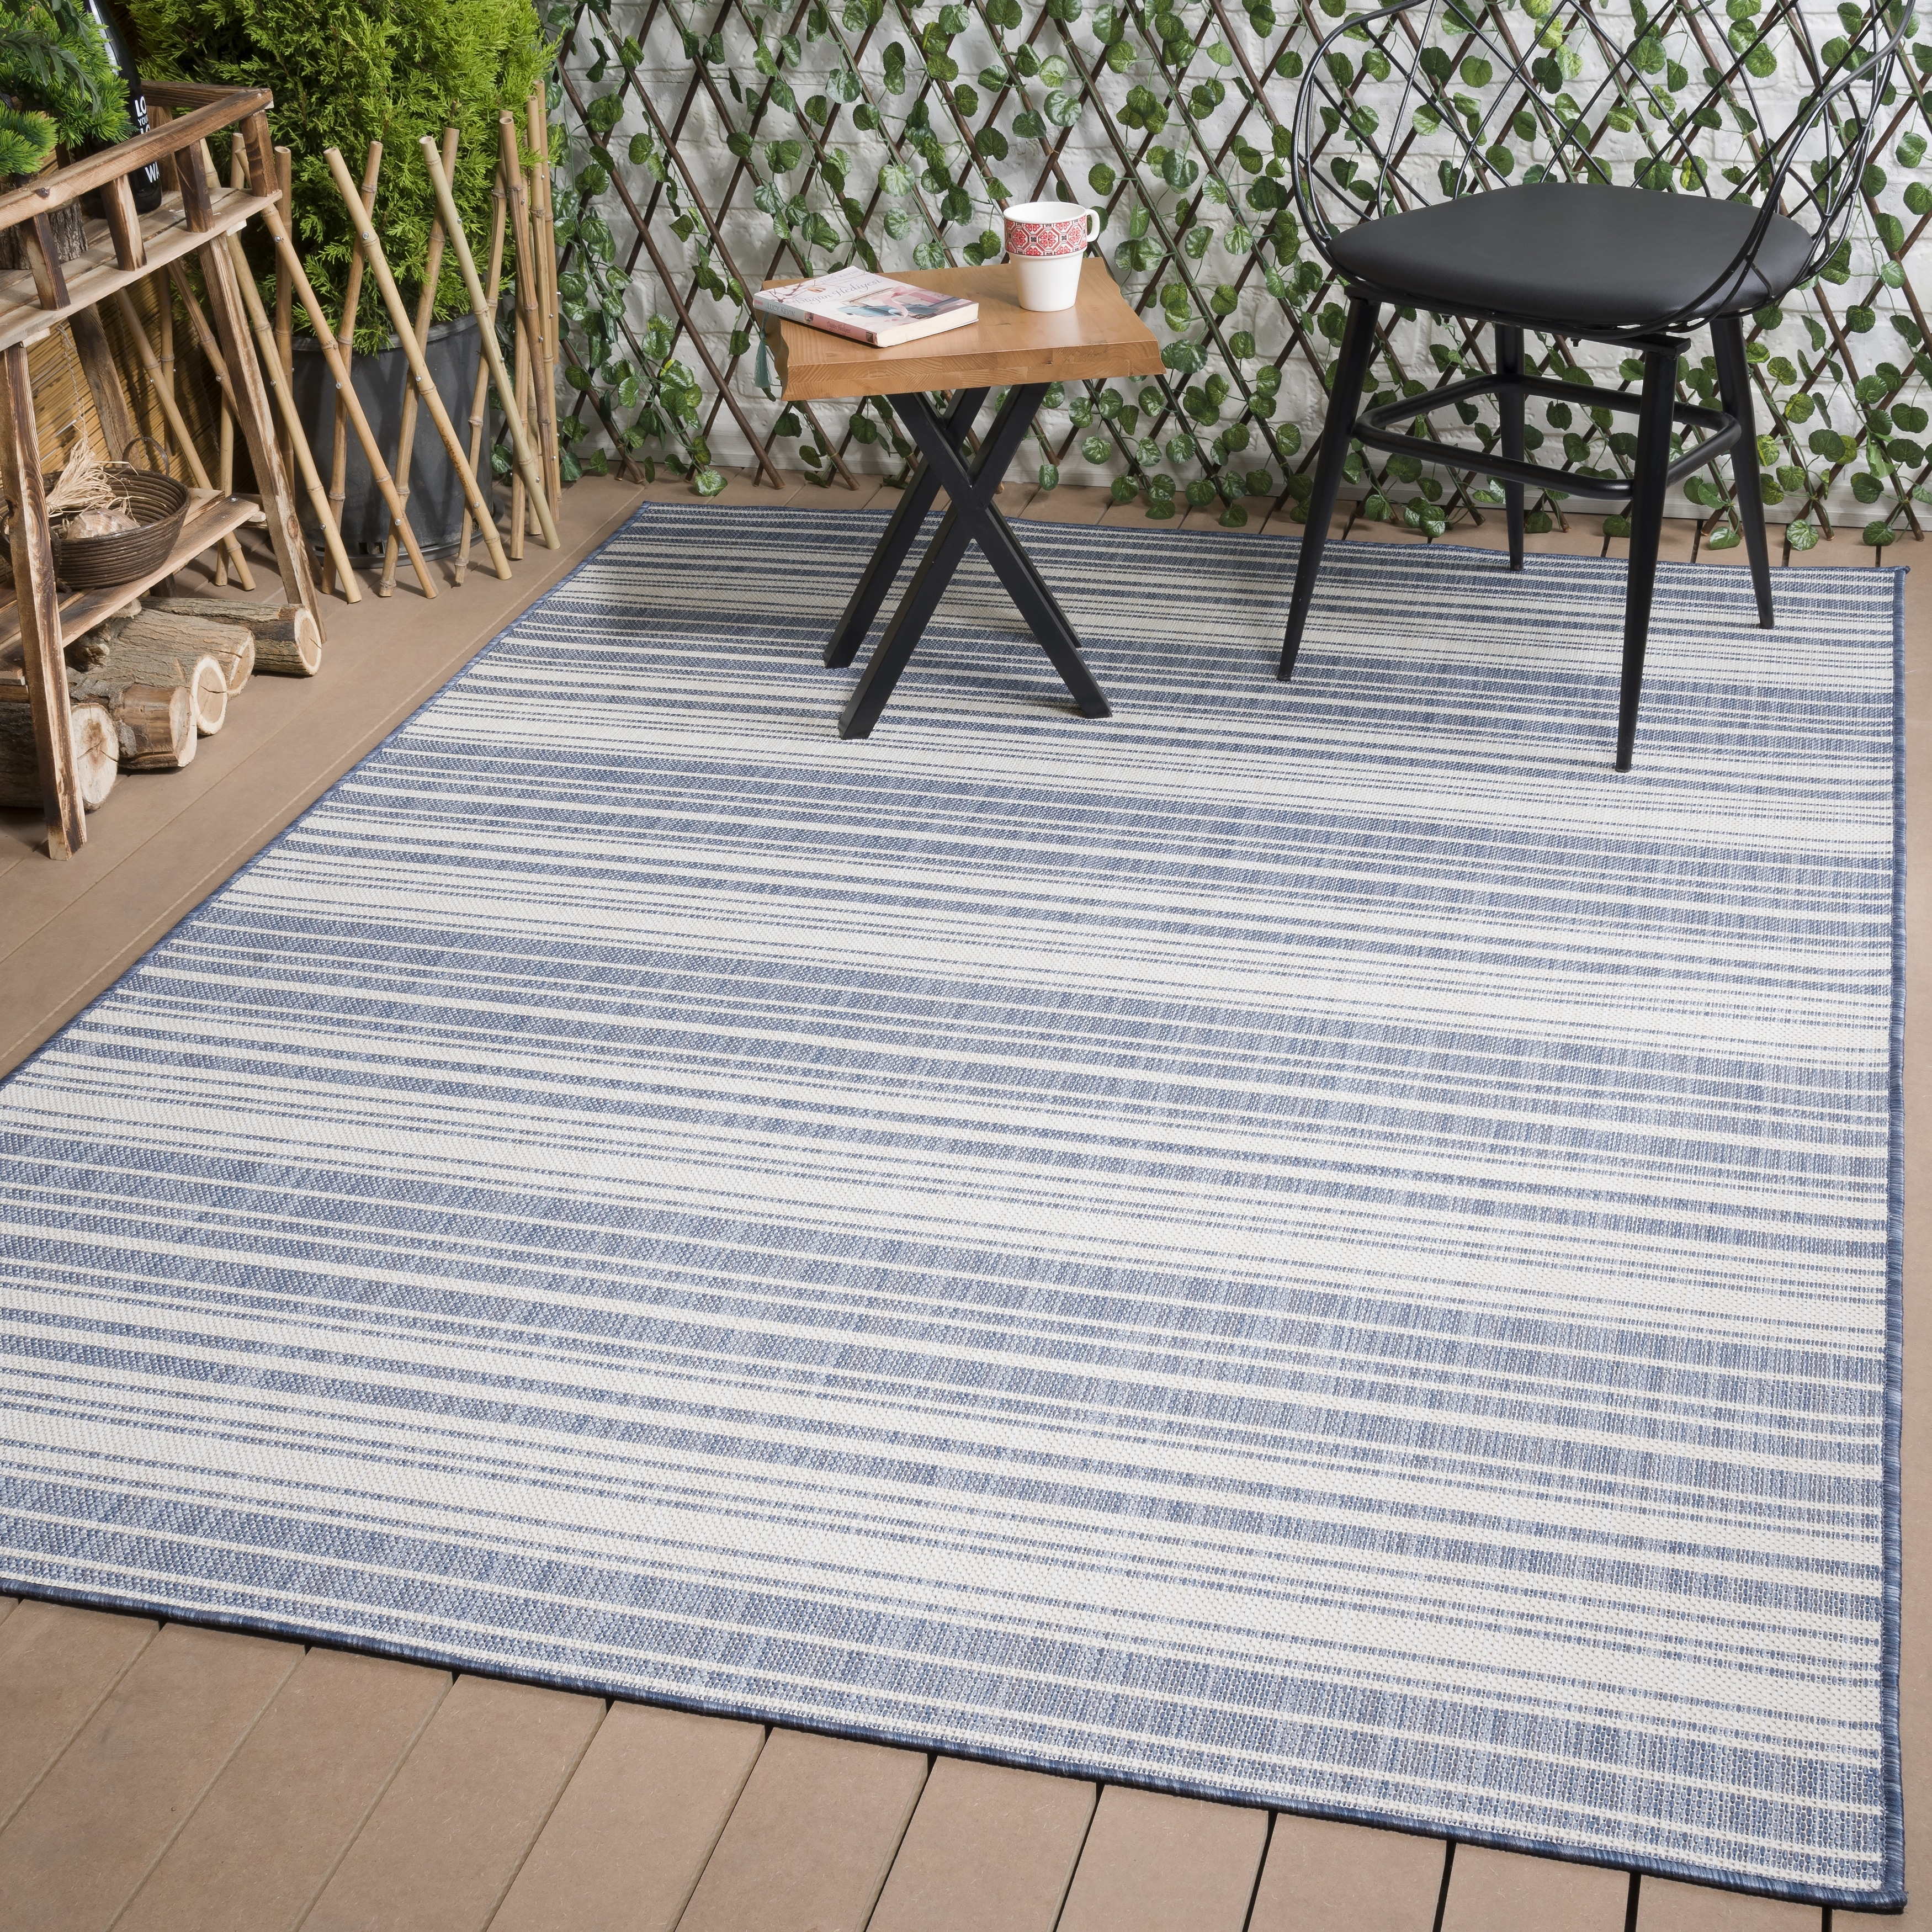 Shop Beverly Rug Waikiki Collection Indoor Outdoor Stripes Area Rug Blue White Wkk20503 Overstock 31772170